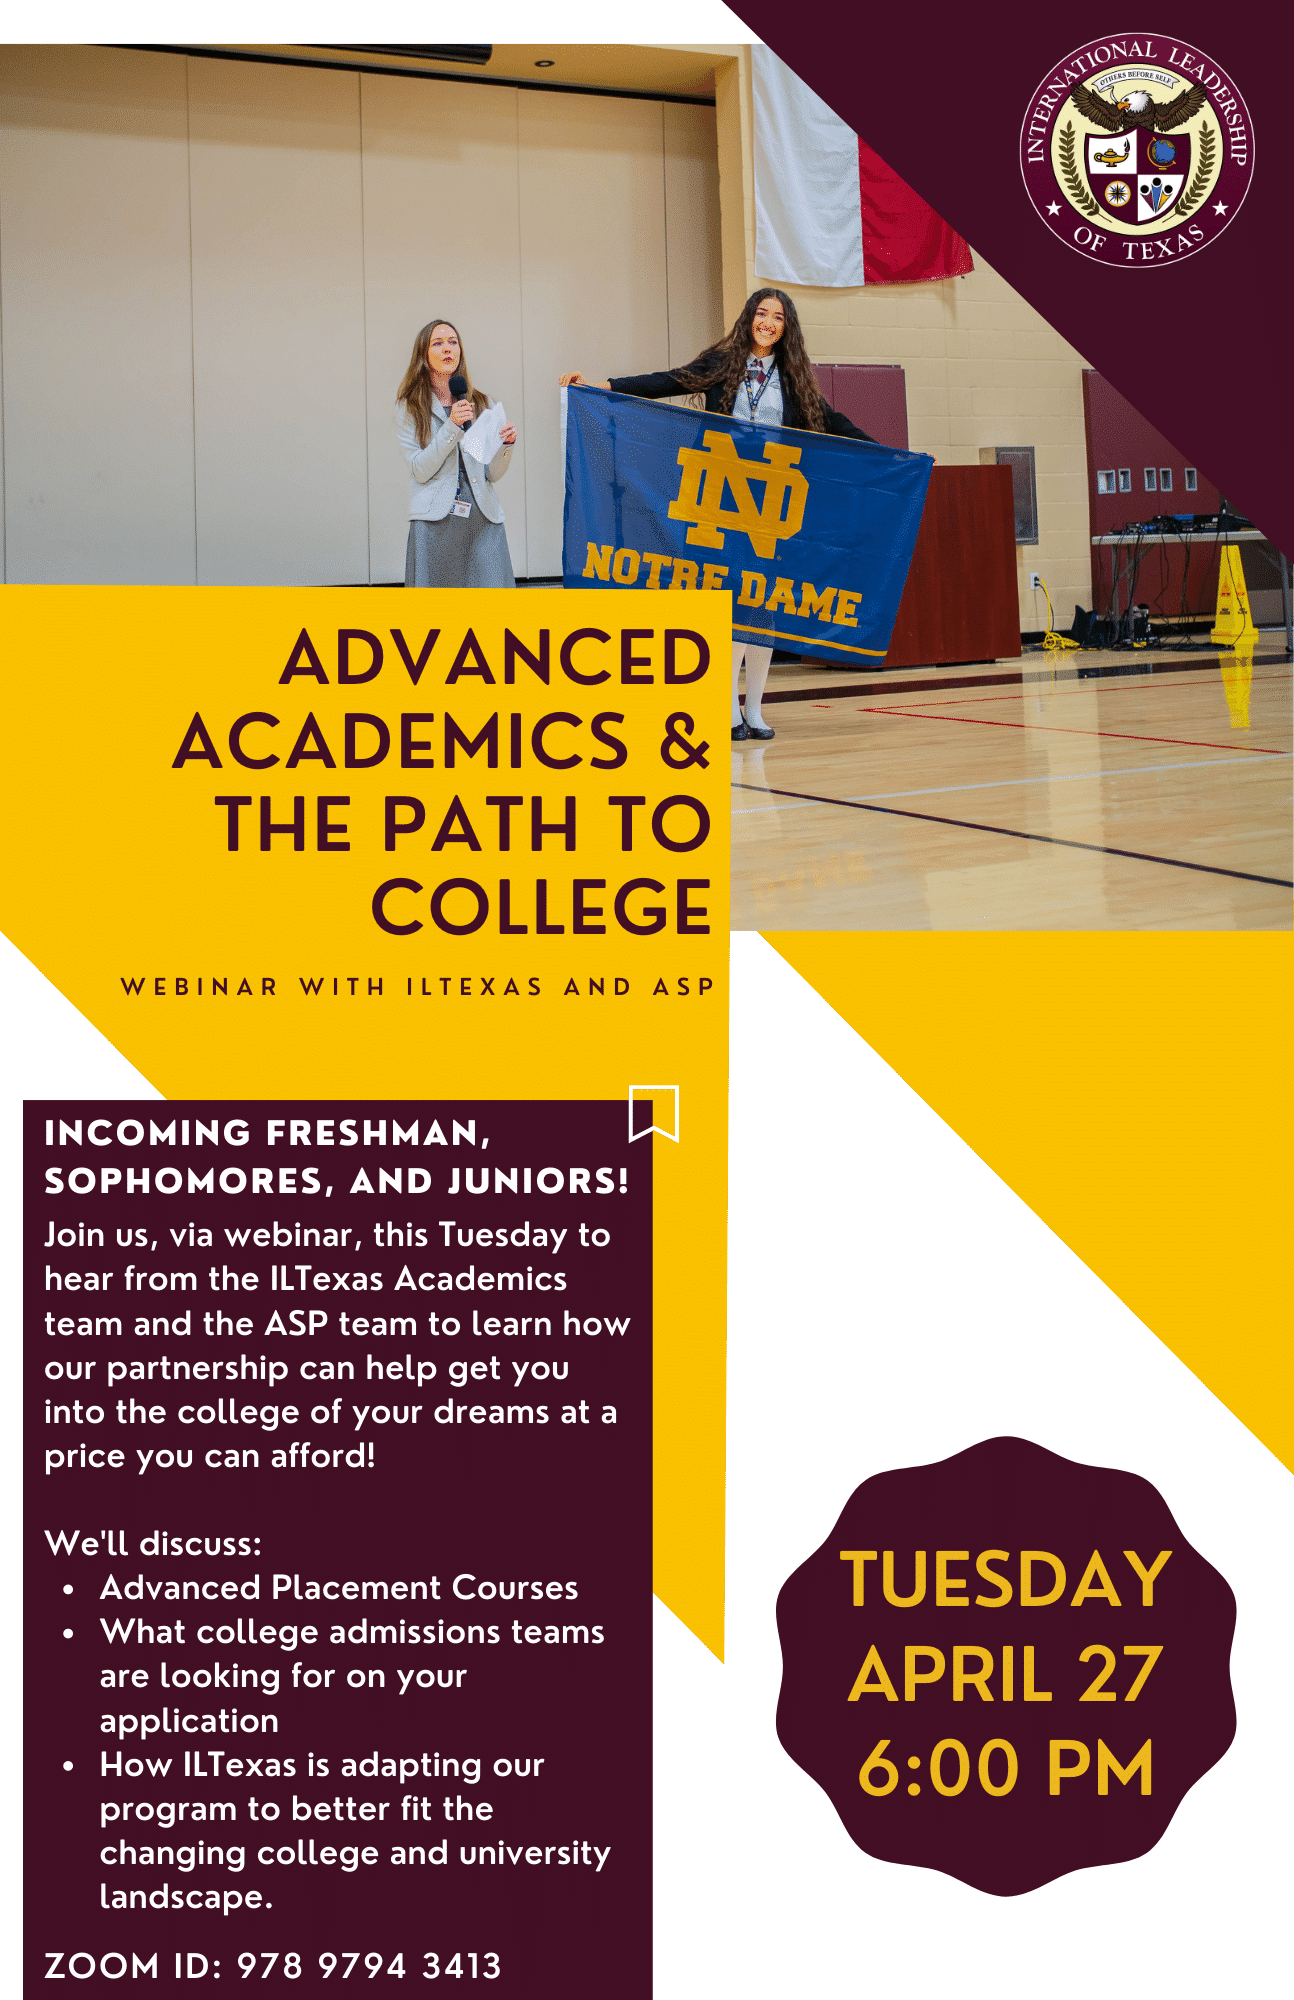 ASP & ILTexas - Advanced Academics and the Path to College